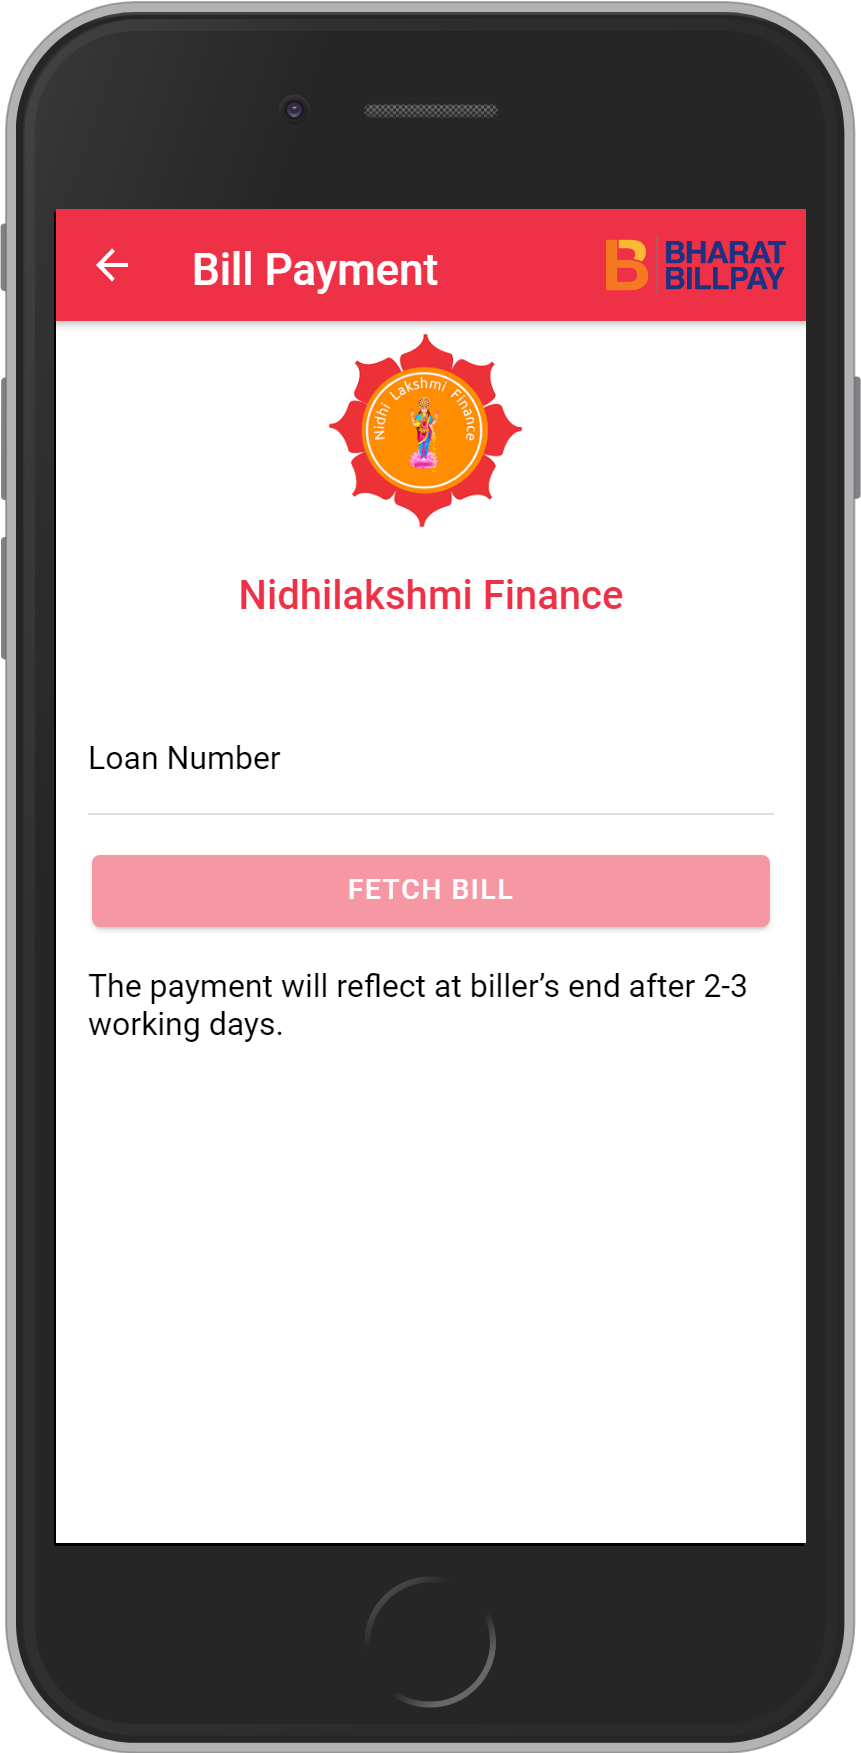 Get UNLIMITED <b>0.1%</b> CASHBACK on Nidhilakshmi Finance Loan Payment.